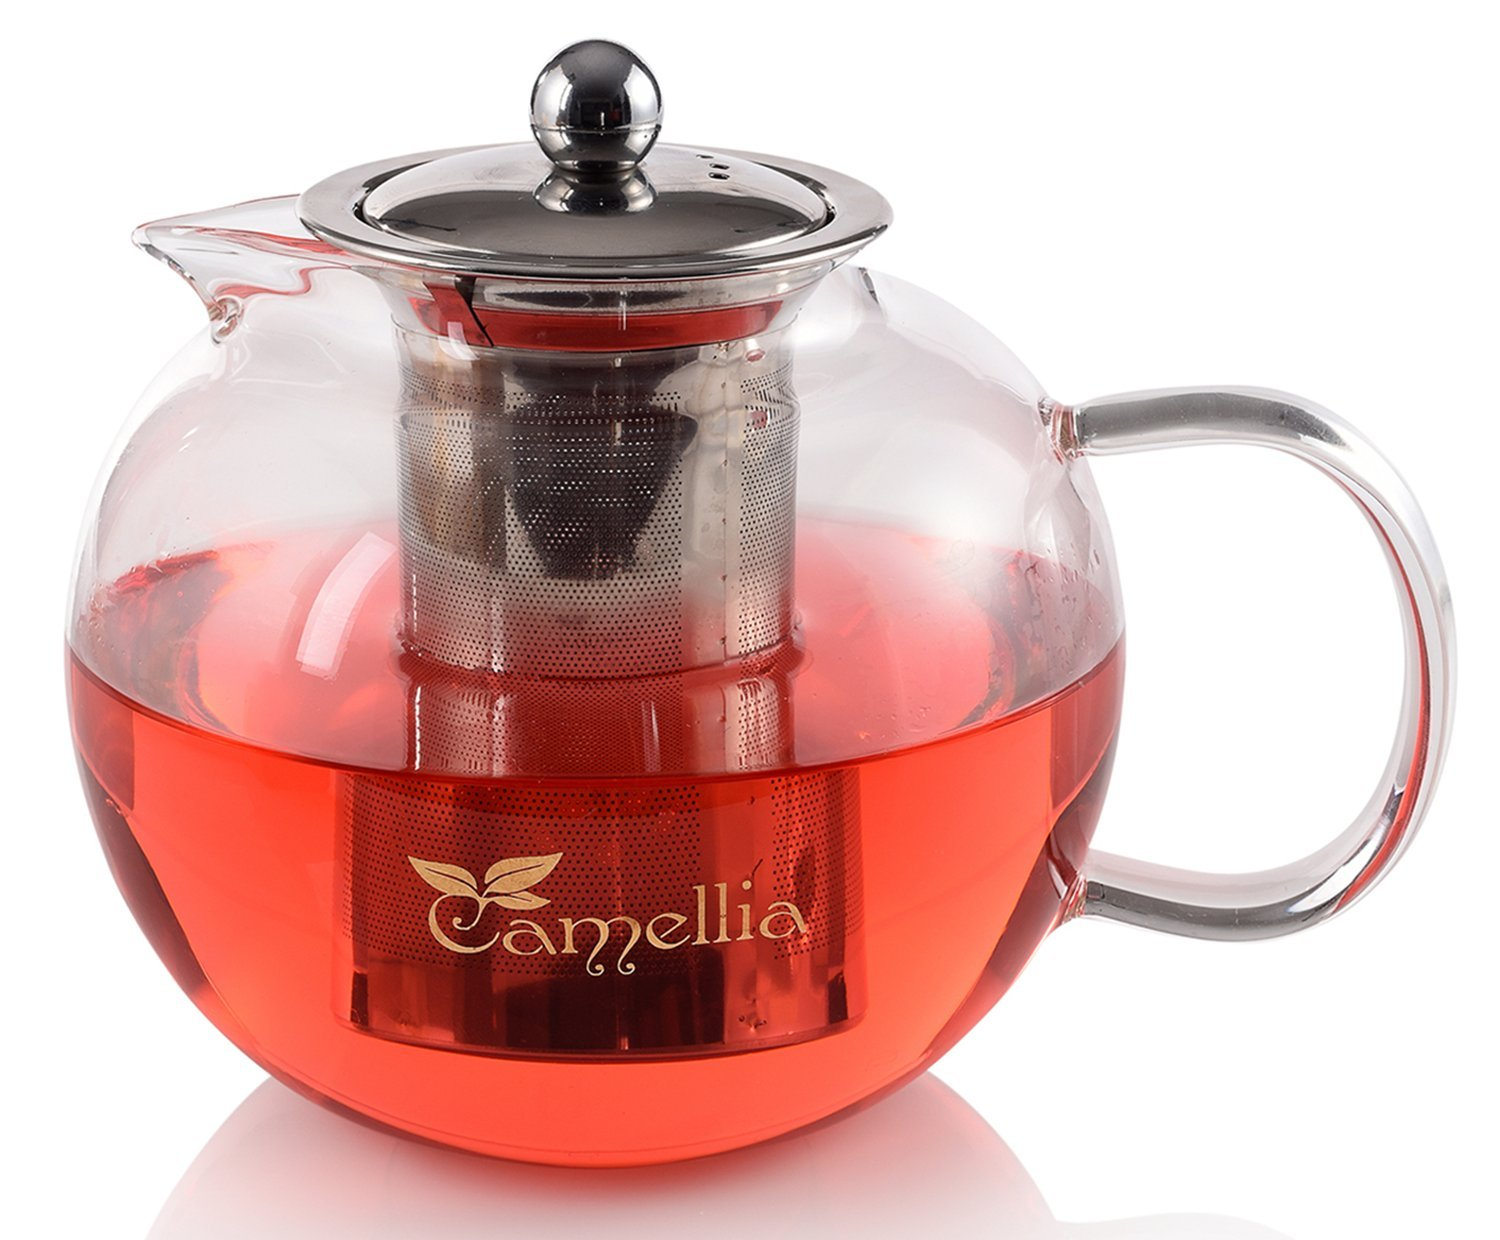 Camellia Teapot with Removable Stainless Steel Infuser, Borosilicate Glass, Loose Leaf Tea Kettle Stovetop Safe - Holds 5 Cups 40 Ounce by Camellia